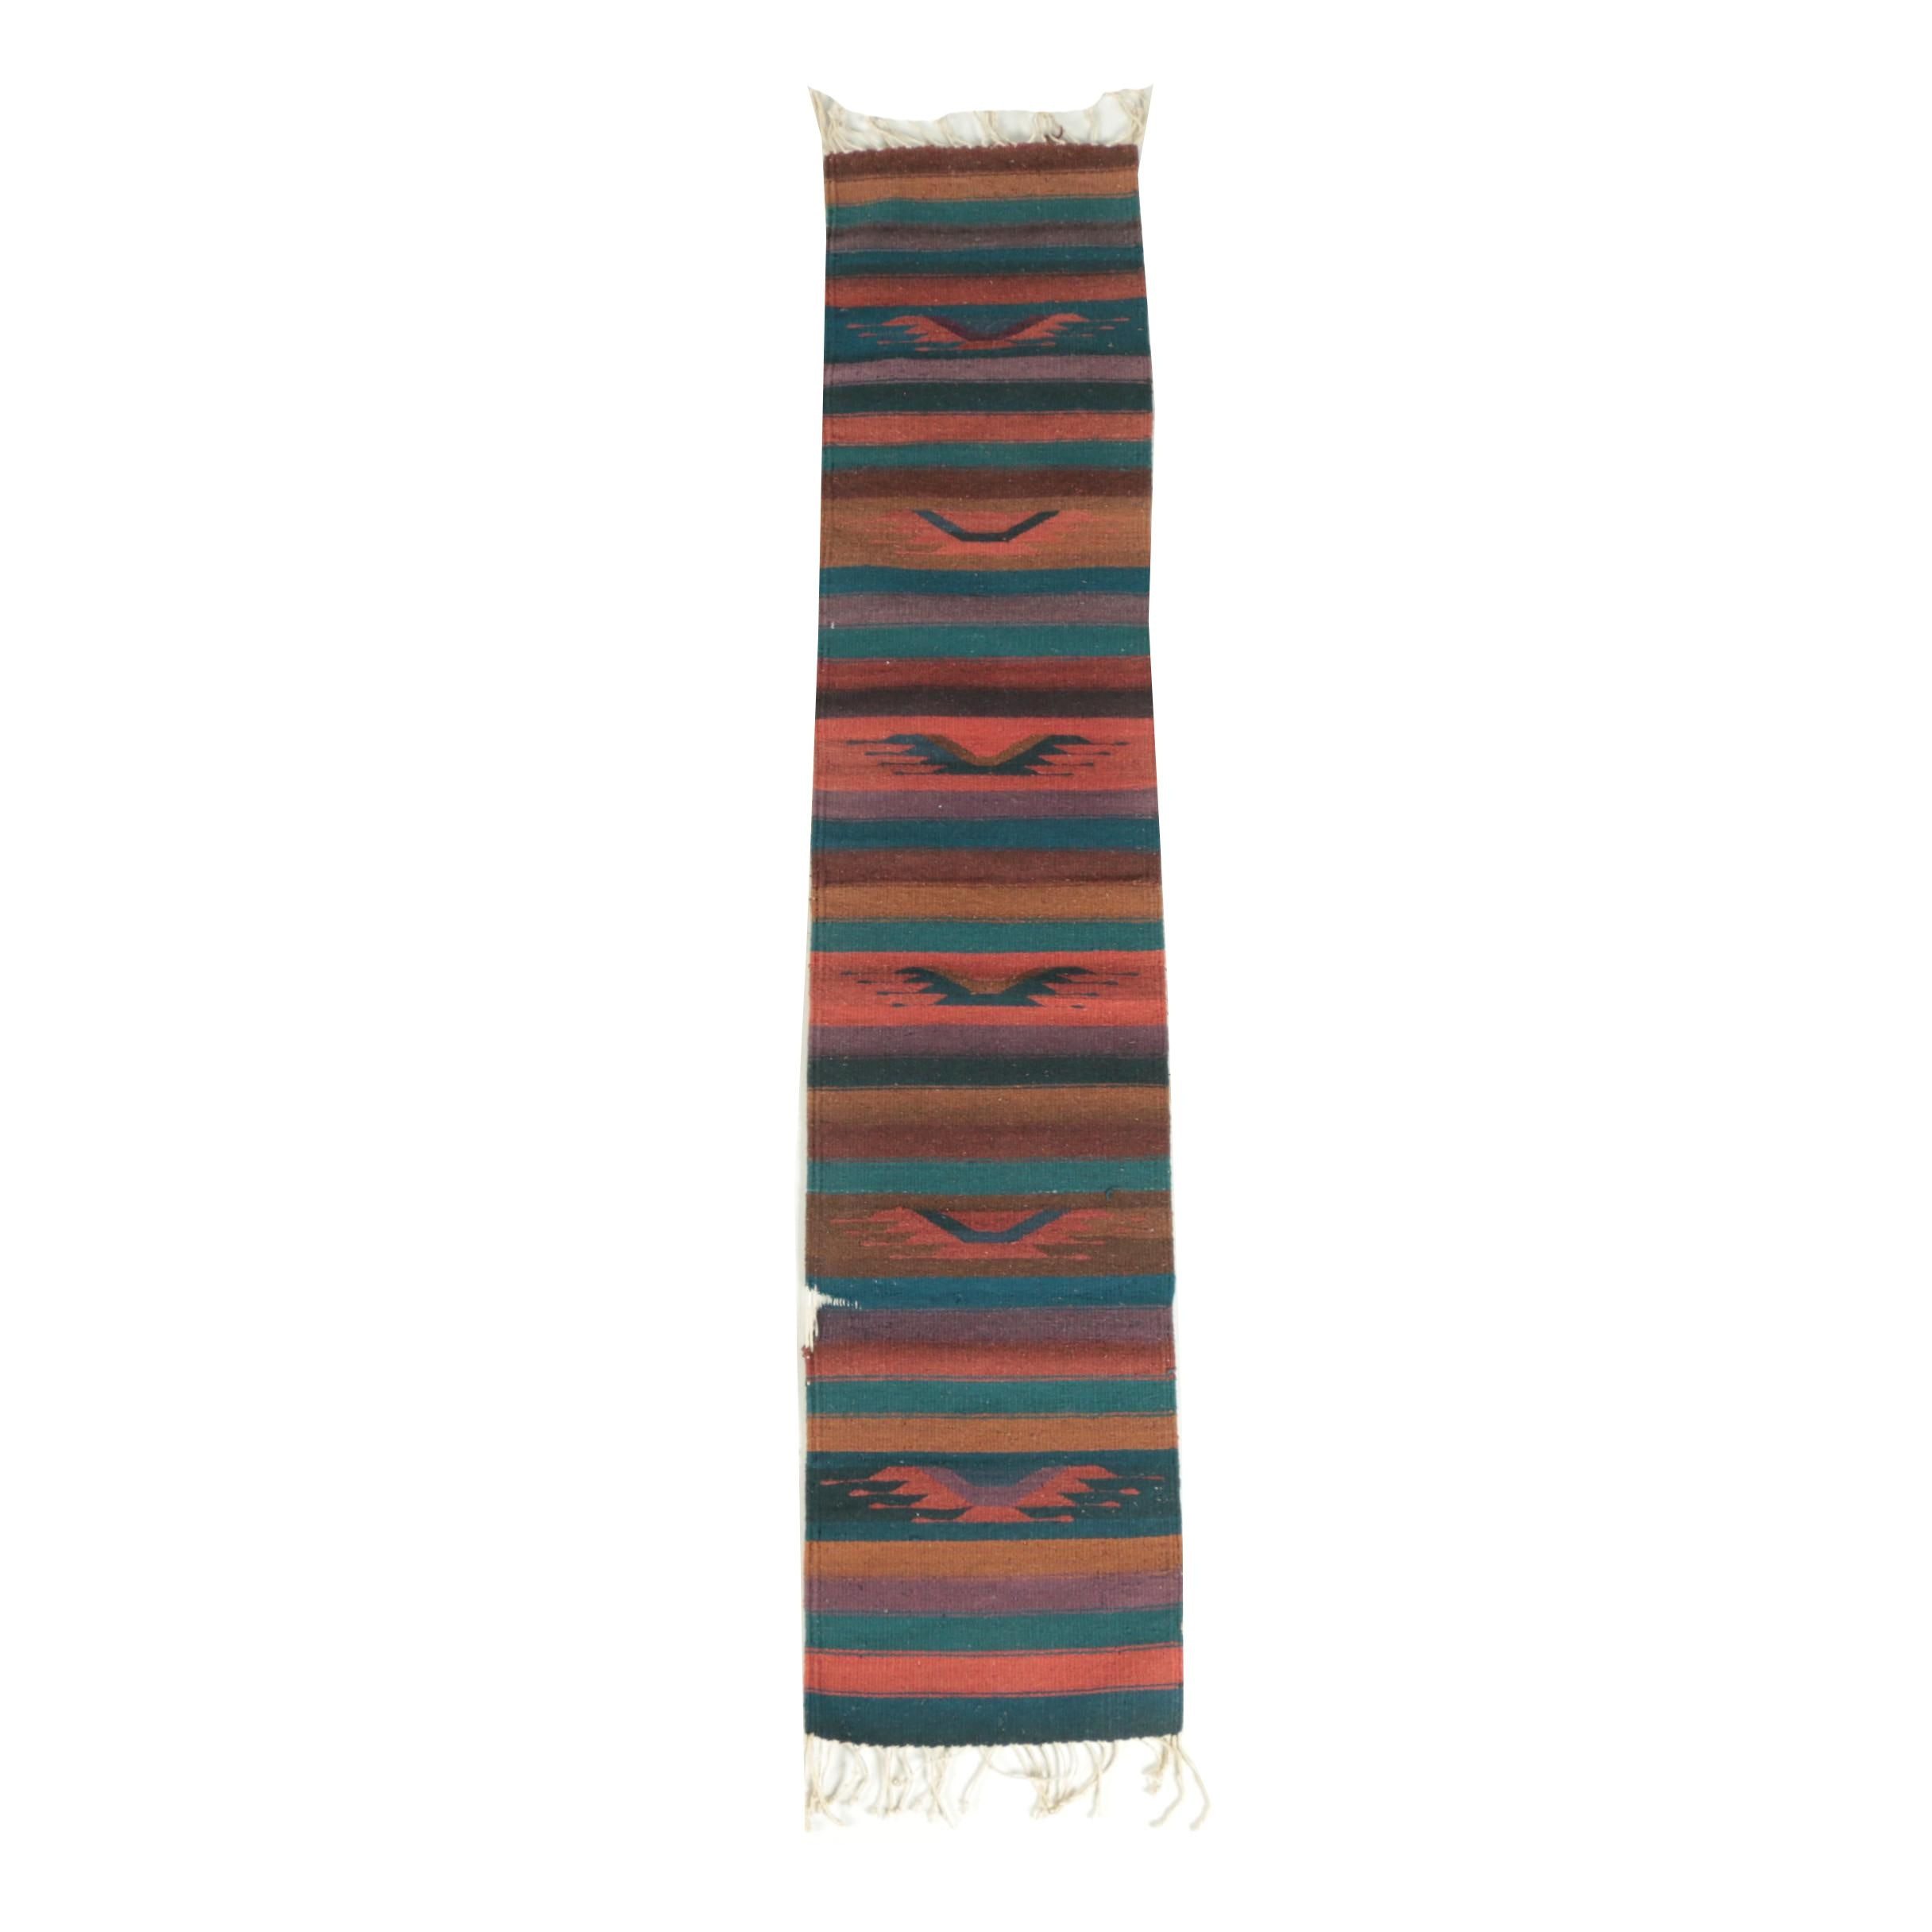 Handwoven Mexican Wool Carpet Runner by Casa Gunginn